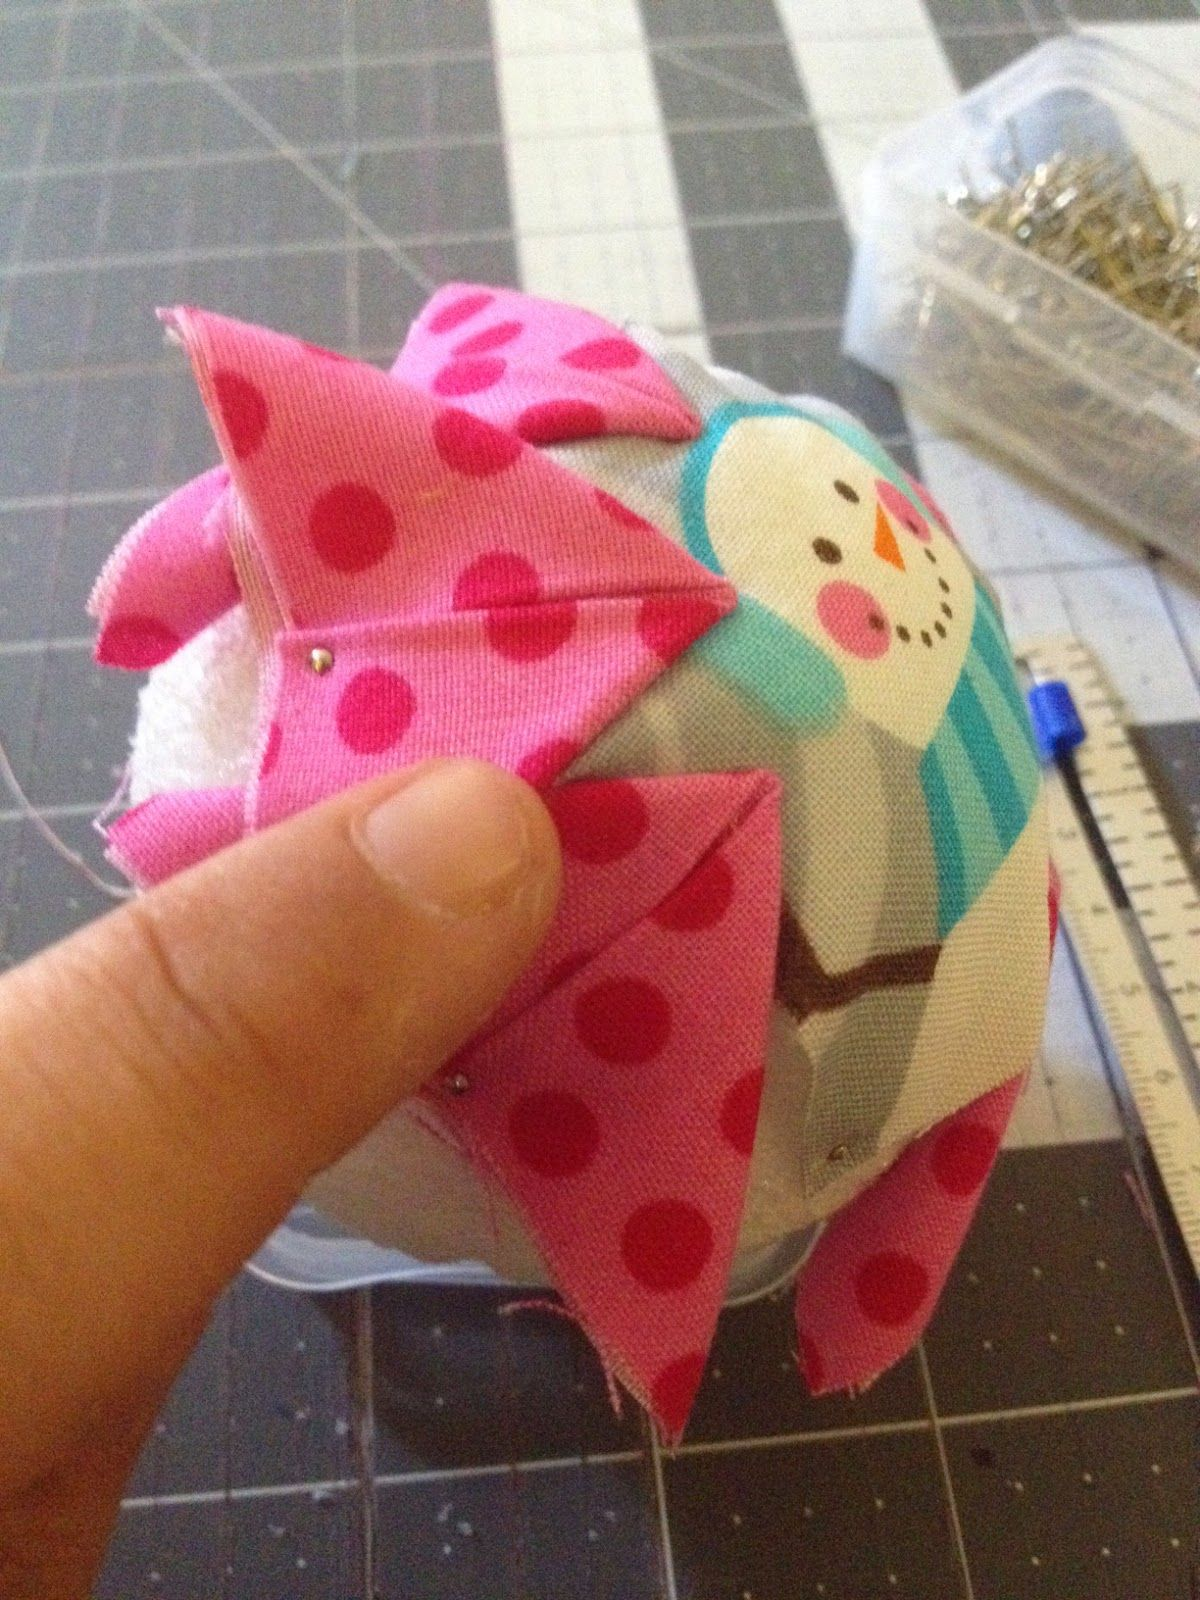 A blog with sewing tutorials and free patterns from create kids a blog with sewing tutorials and free patterns from create kids couture a leader in jeuxipadfo Choice Image